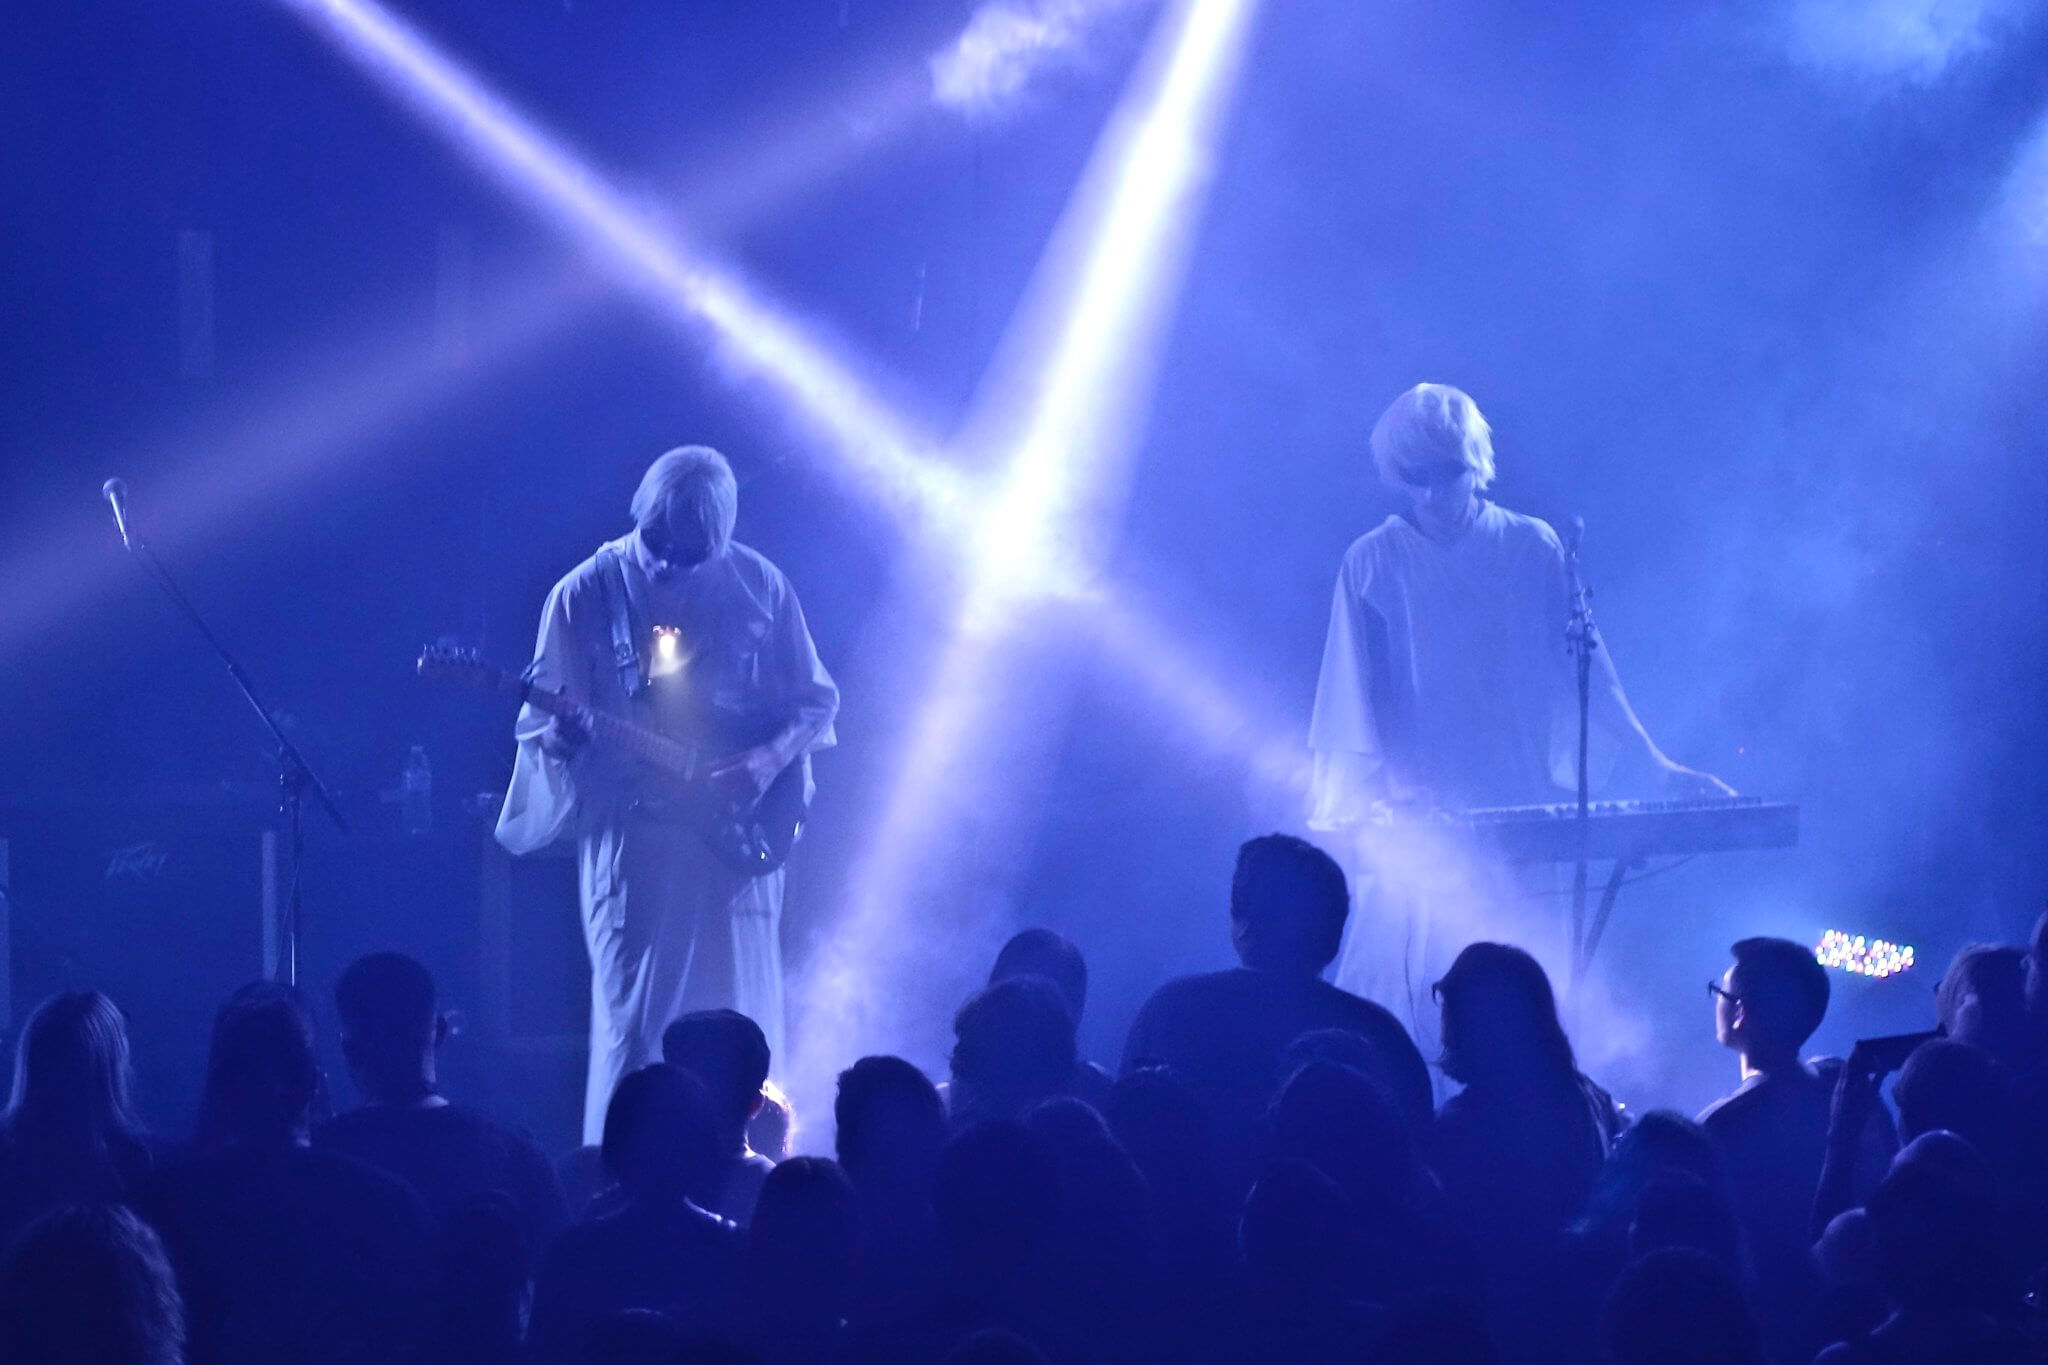 Cloak & Dagger, Night 1: The Jesus & Mary Chain, Com Truise, HEALTH, Drab Majesty, Chasms 2